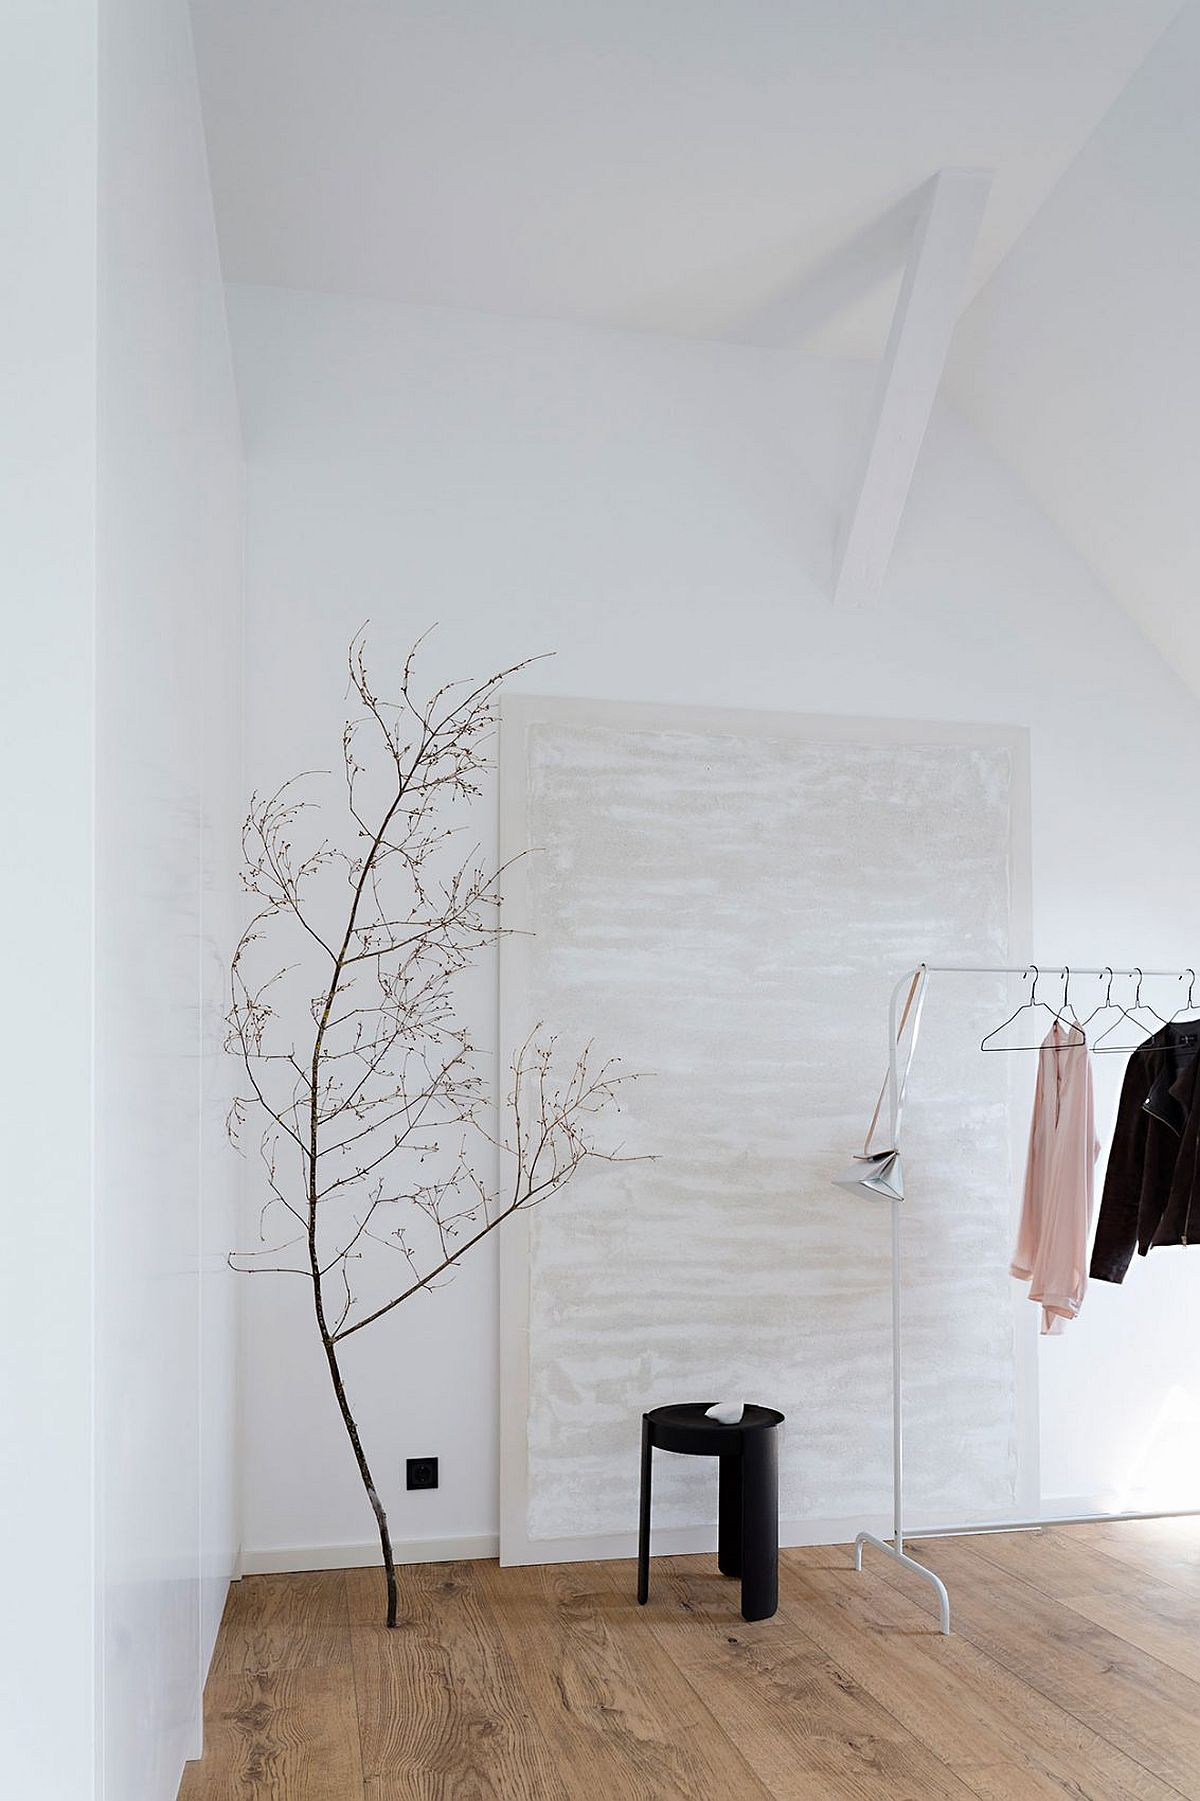 Stylish and simple way to decorate the bedroom corner with dried branches